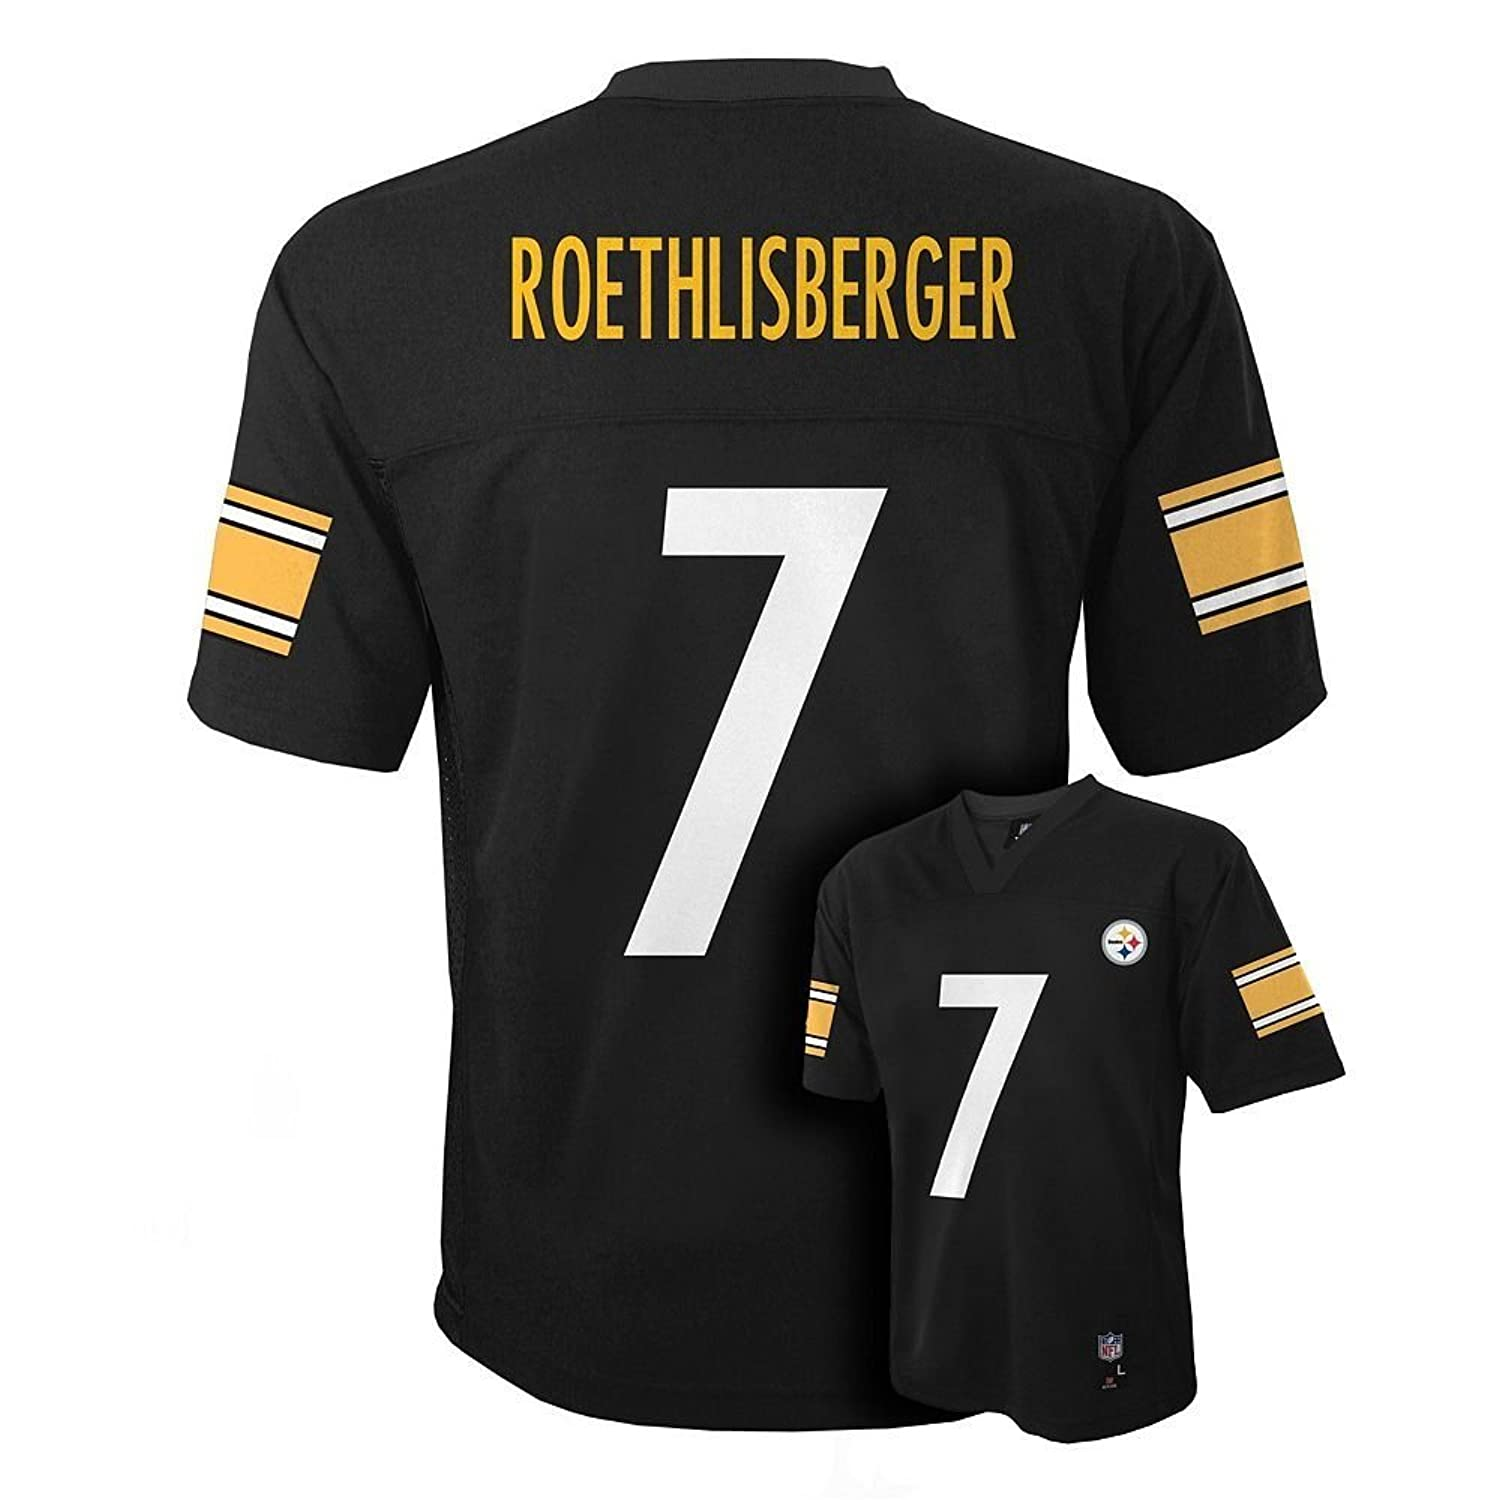 Wholesale Ben Roethlisberger Pittsburgh Steelers NFL Youth Black Home Mid-Tier Jersey (Size Medium 10-12)